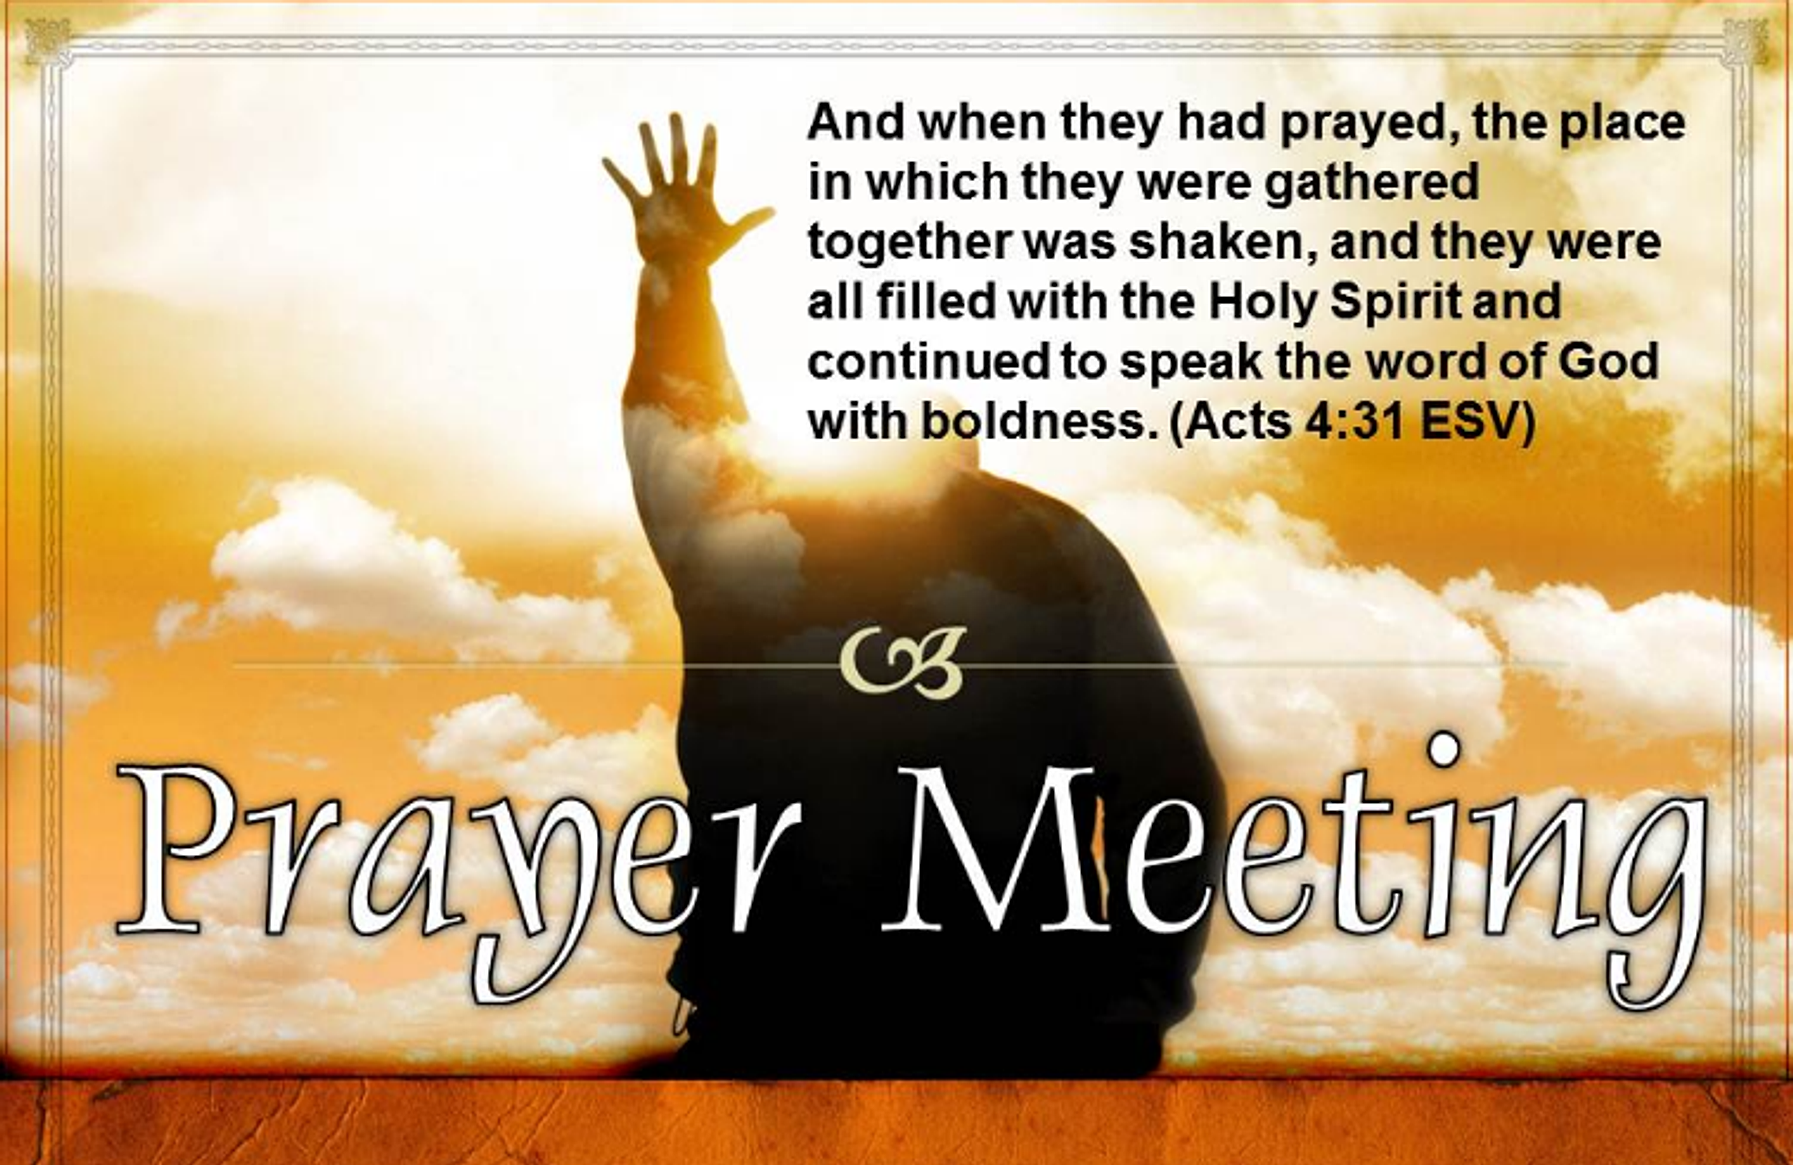 Prayer is meeting with God